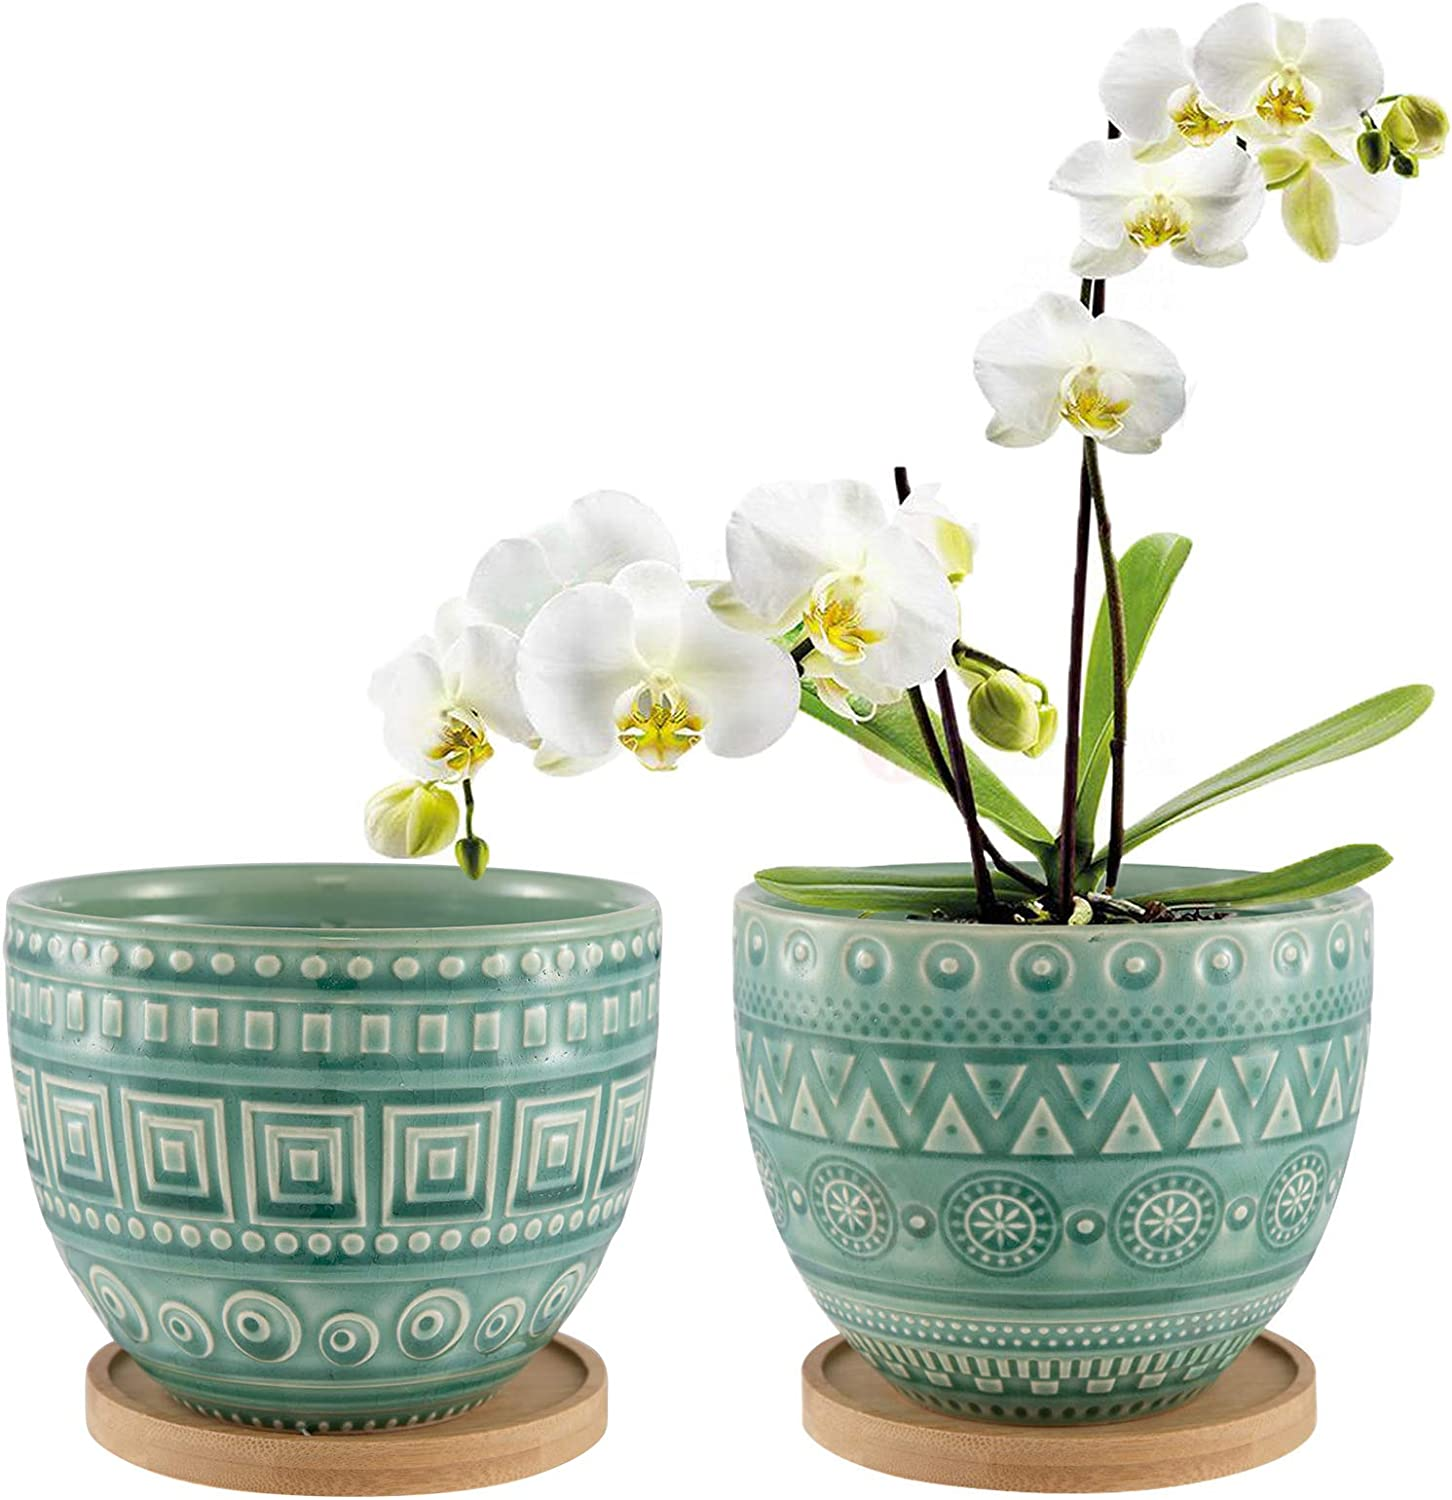 Retro Succulent Planter Pot Colorful Glaze Ceramic Planters Indoor Set of 2 with Drainage Hole and Bamboo Tray